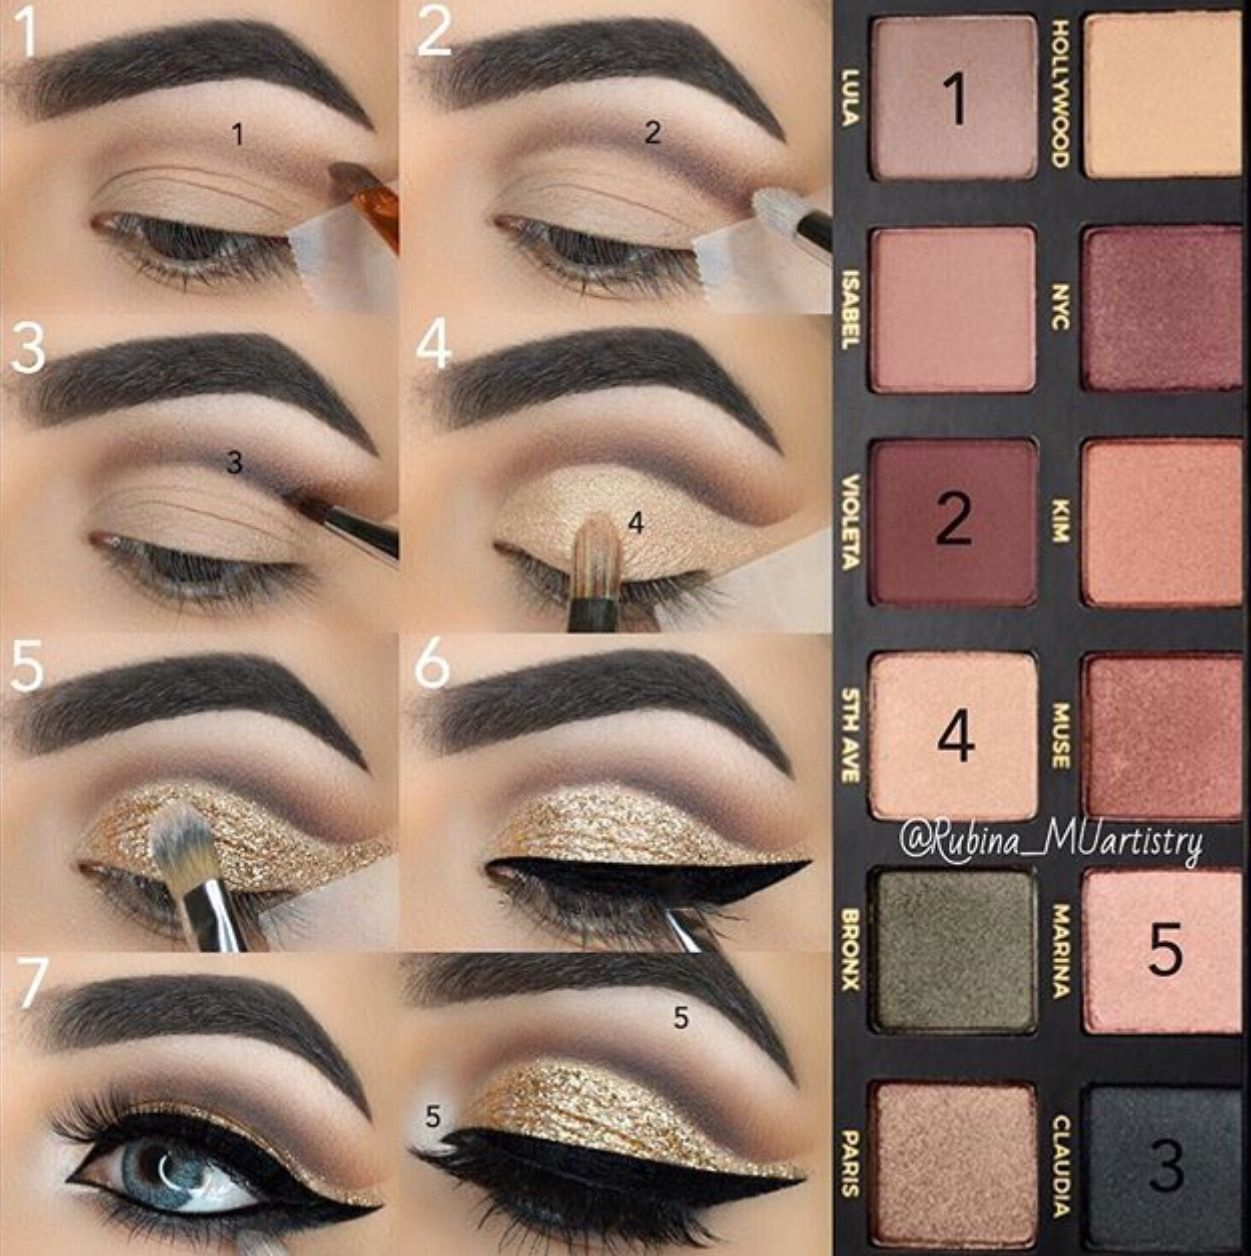 Pin by lily melendez on beauty pinterest makeup eye makeup makeup tutorial black cut crease with glittery gold a super glam makeup look perfect for dinner dates weddings prom or parties baditri Images